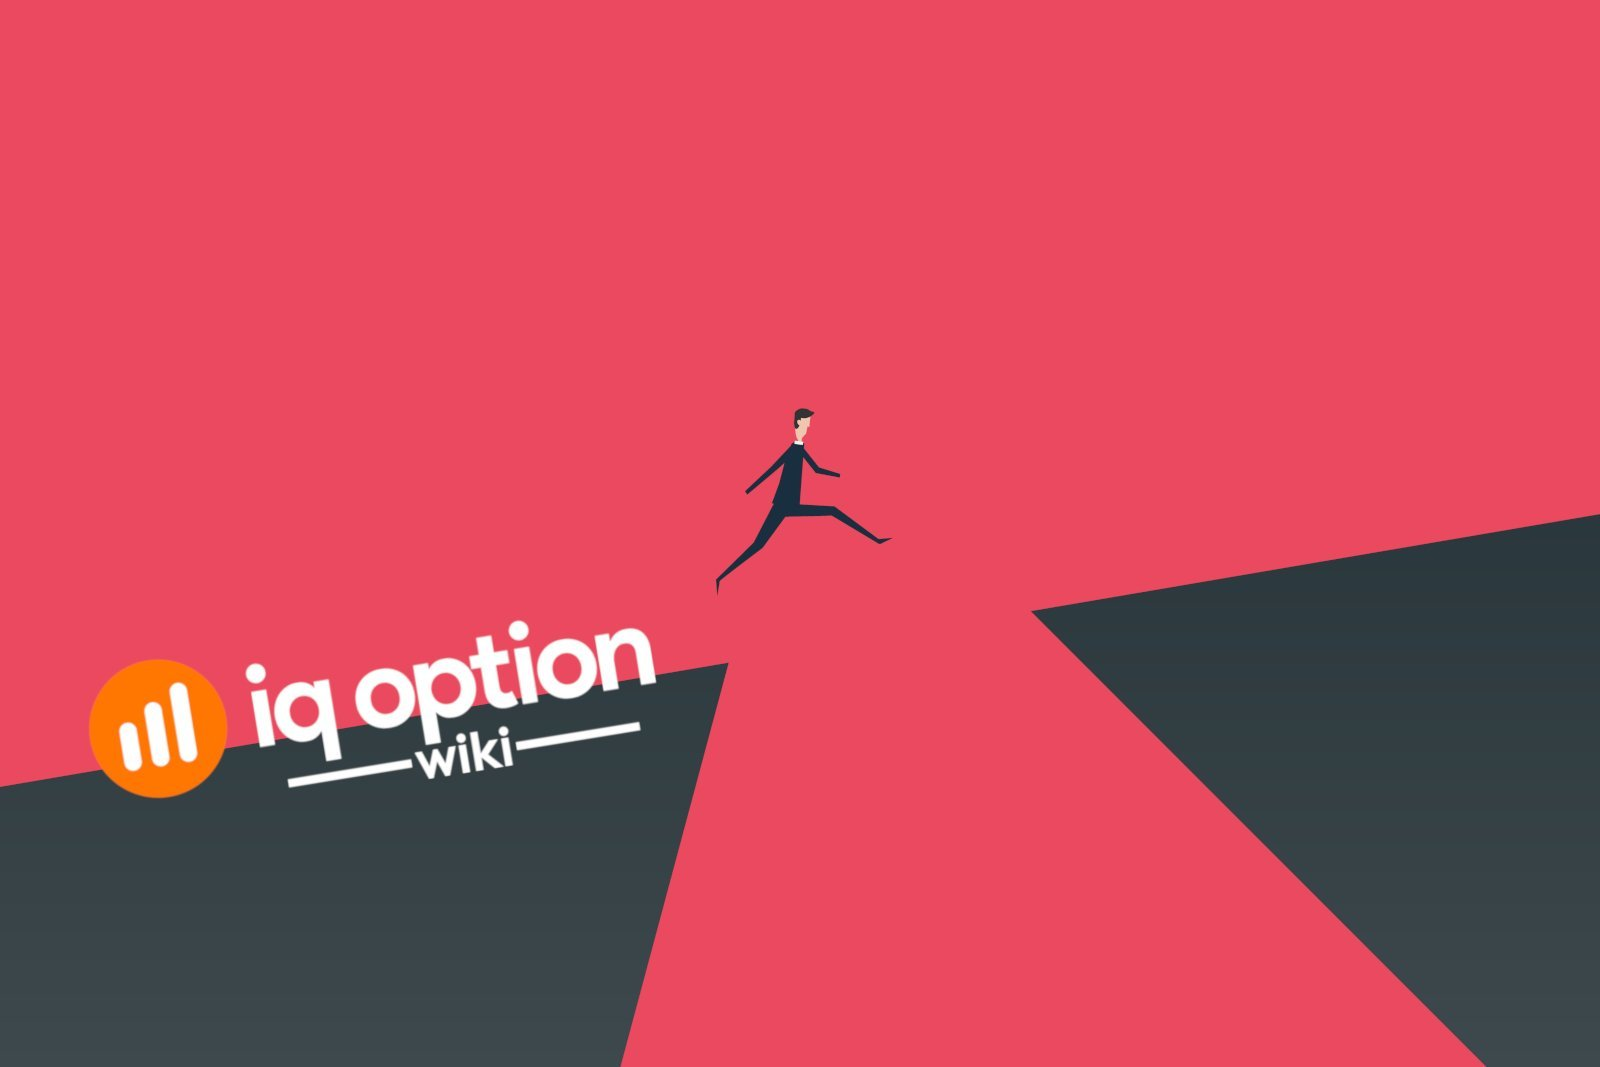 gaps explained iq option